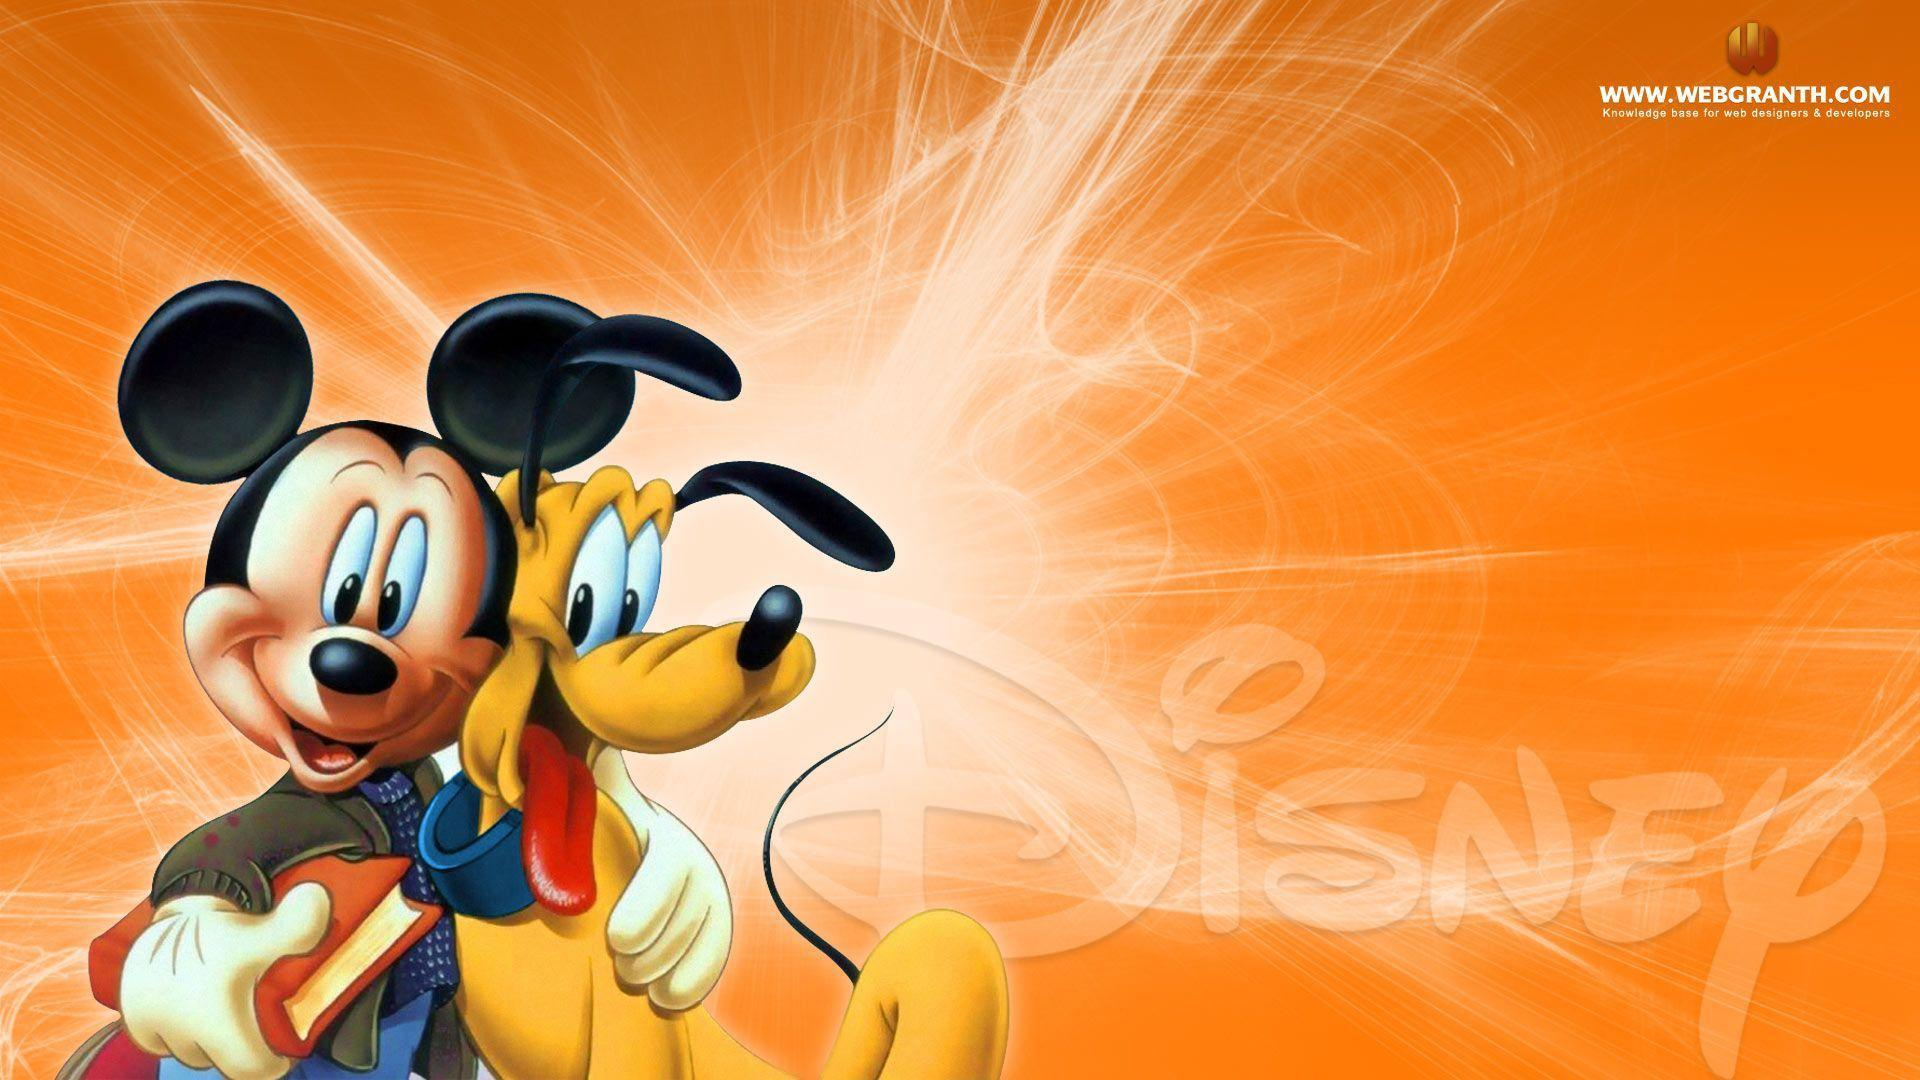 widescreen wallpapers of mickey - photo #1